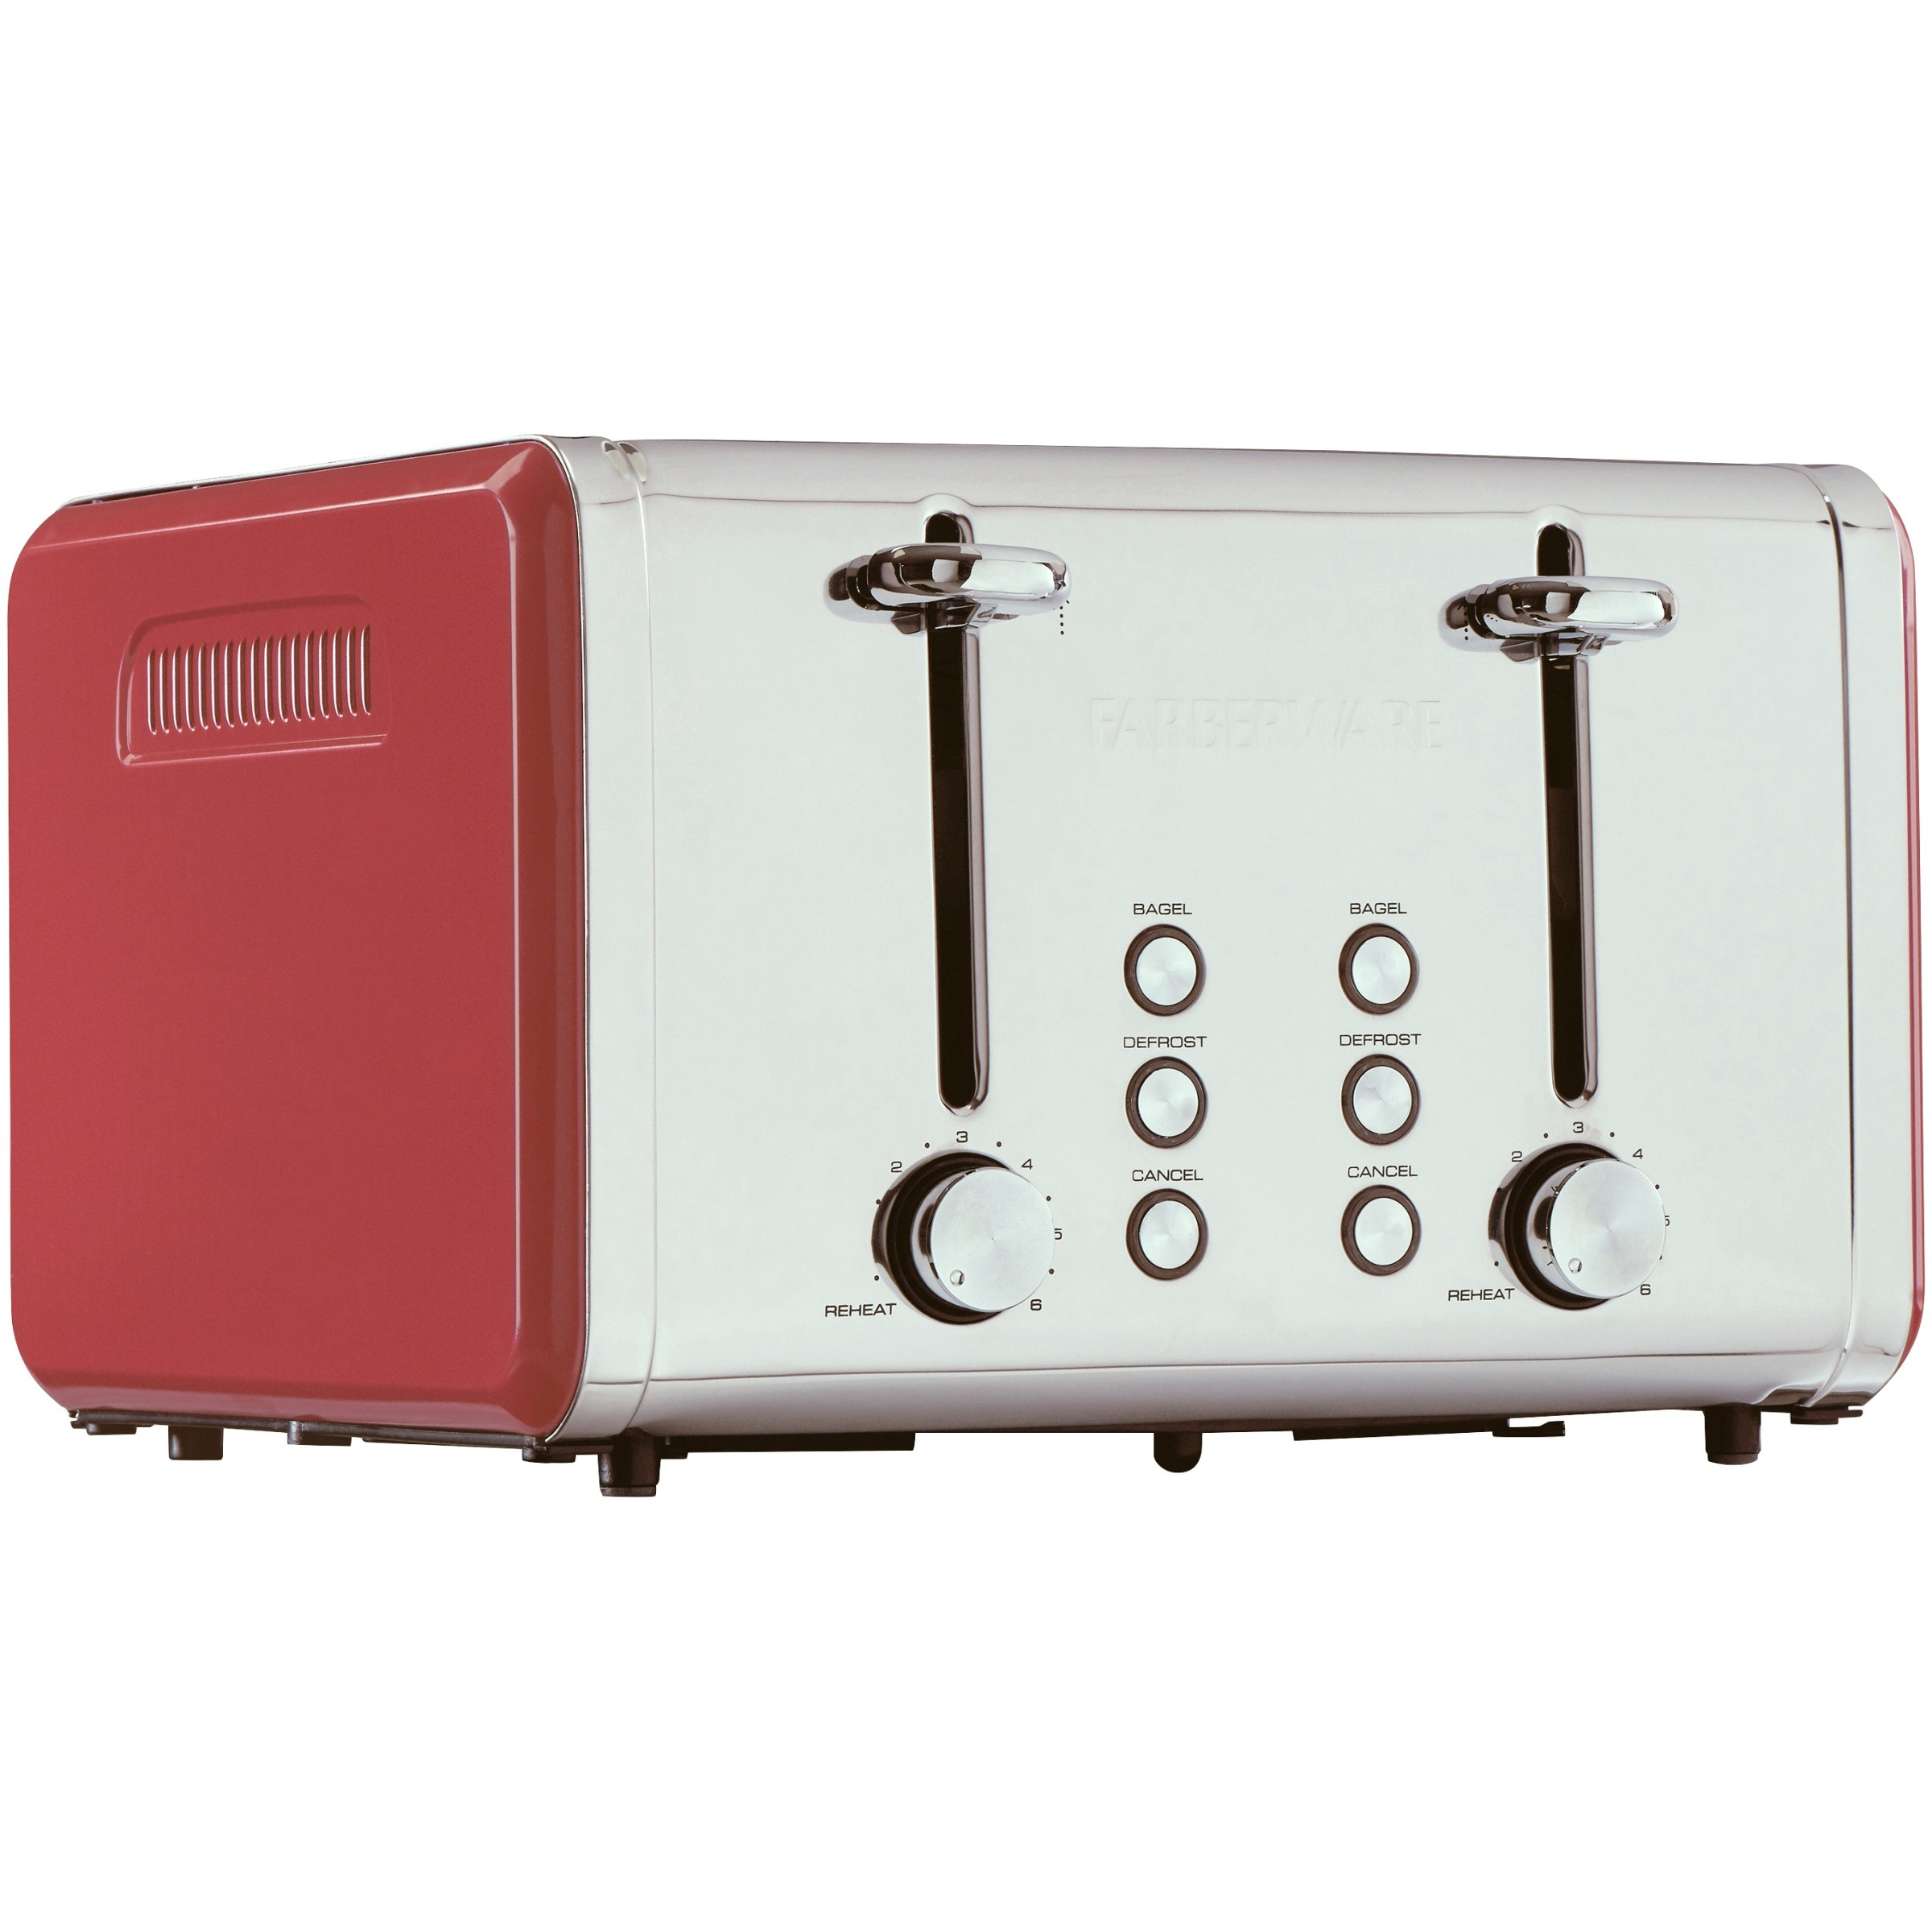 Farberware 4 Slice Red Toaster 3 Preset Functions with Removable Crumb Tray